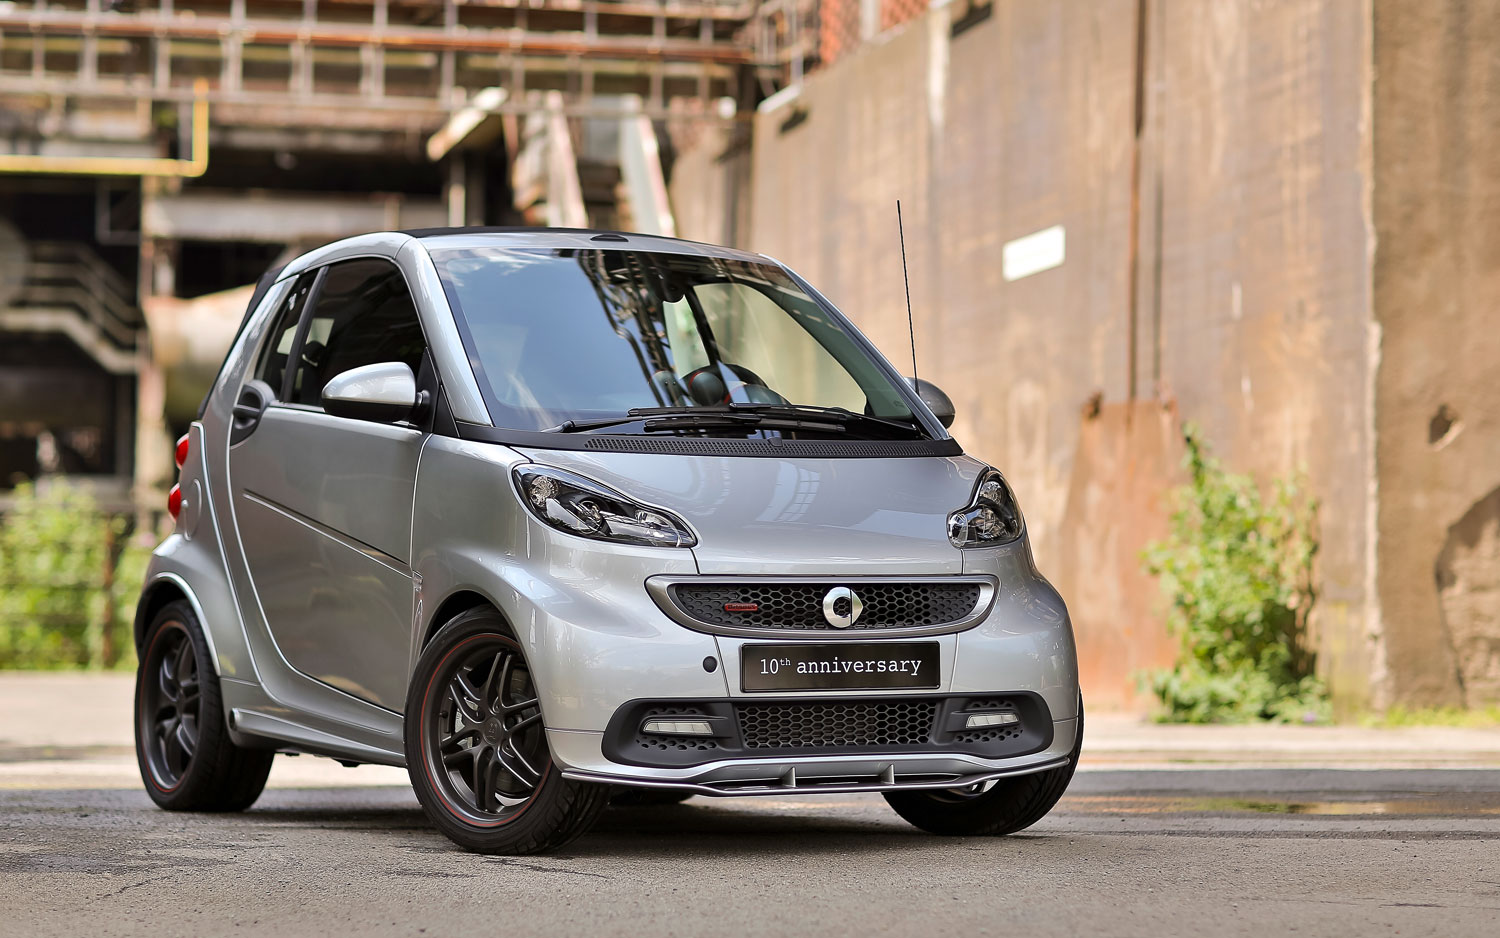 ten times fortwo special edition smart celebrates brabus. Black Bedroom Furniture Sets. Home Design Ideas